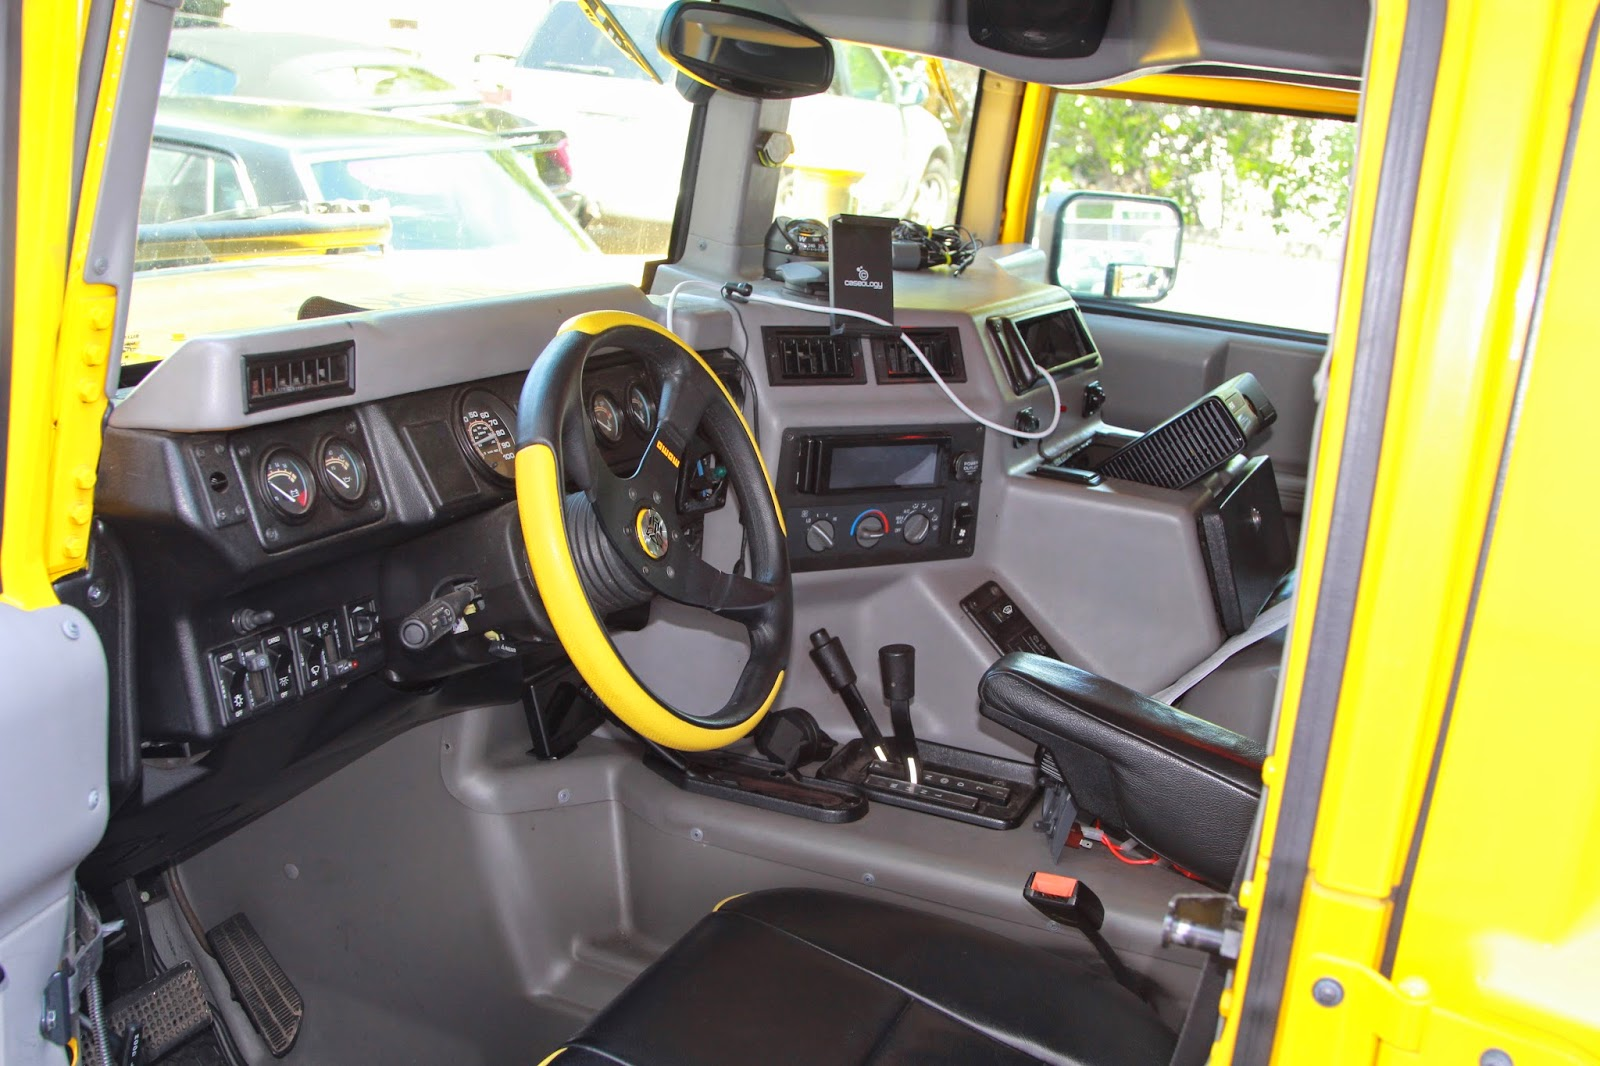 This Project Is A Clean Up Of This H1 Hummer Interior.